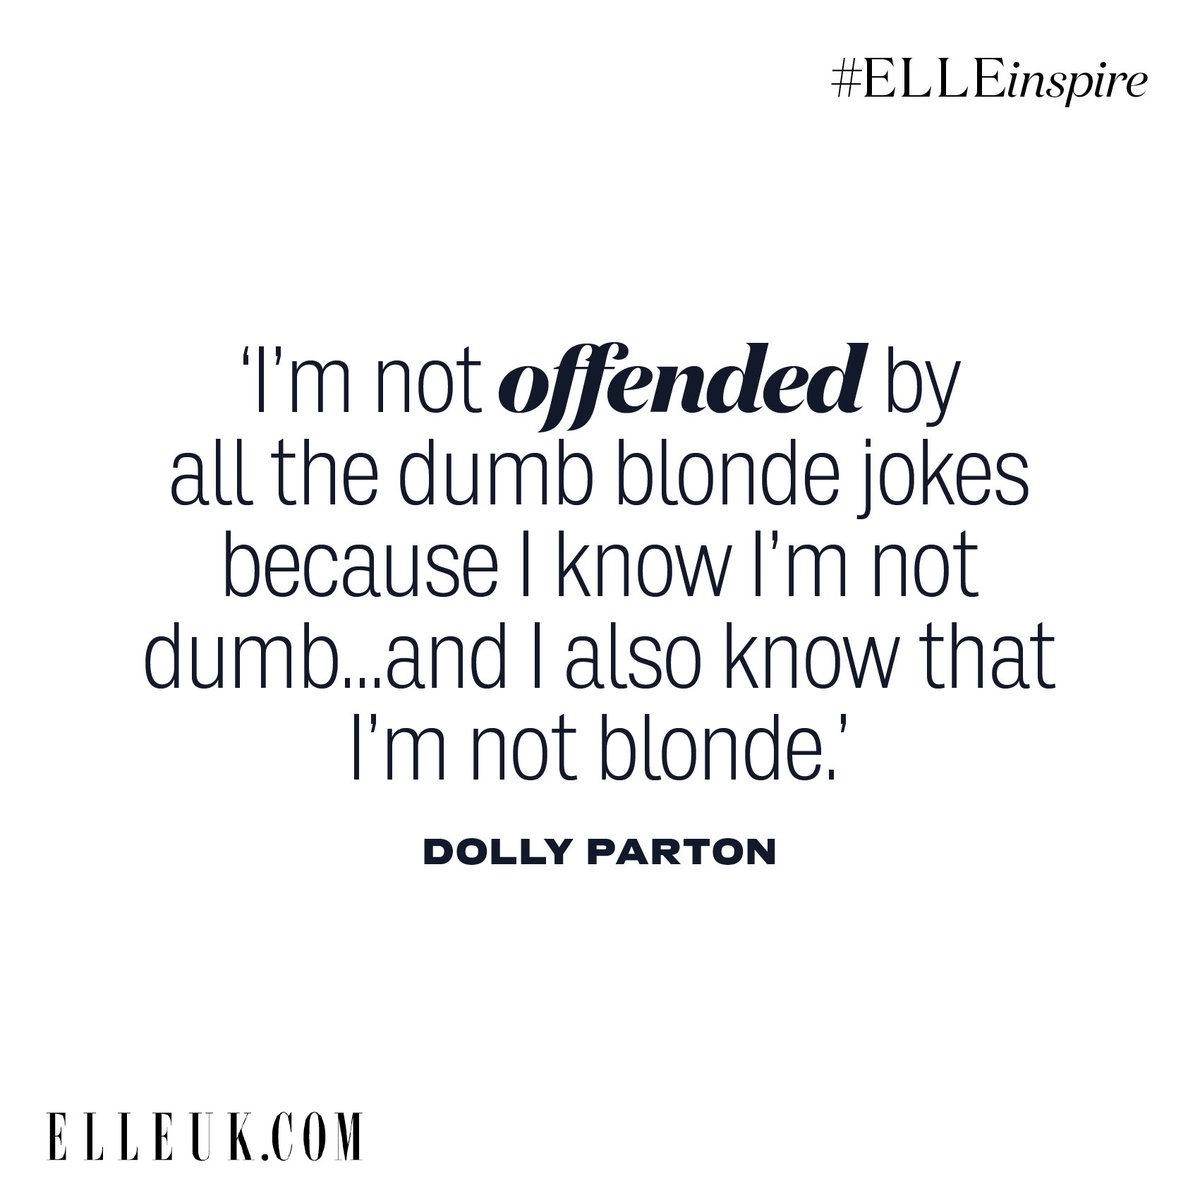 Image of: im Not Offended By Dumb Blonde Jokes Because Know Im Not Dumbi Also Know That Im Not Blonde Dolly Partonpictwittercomm8jt0sdz5j Twitter Elleuk On Twitter